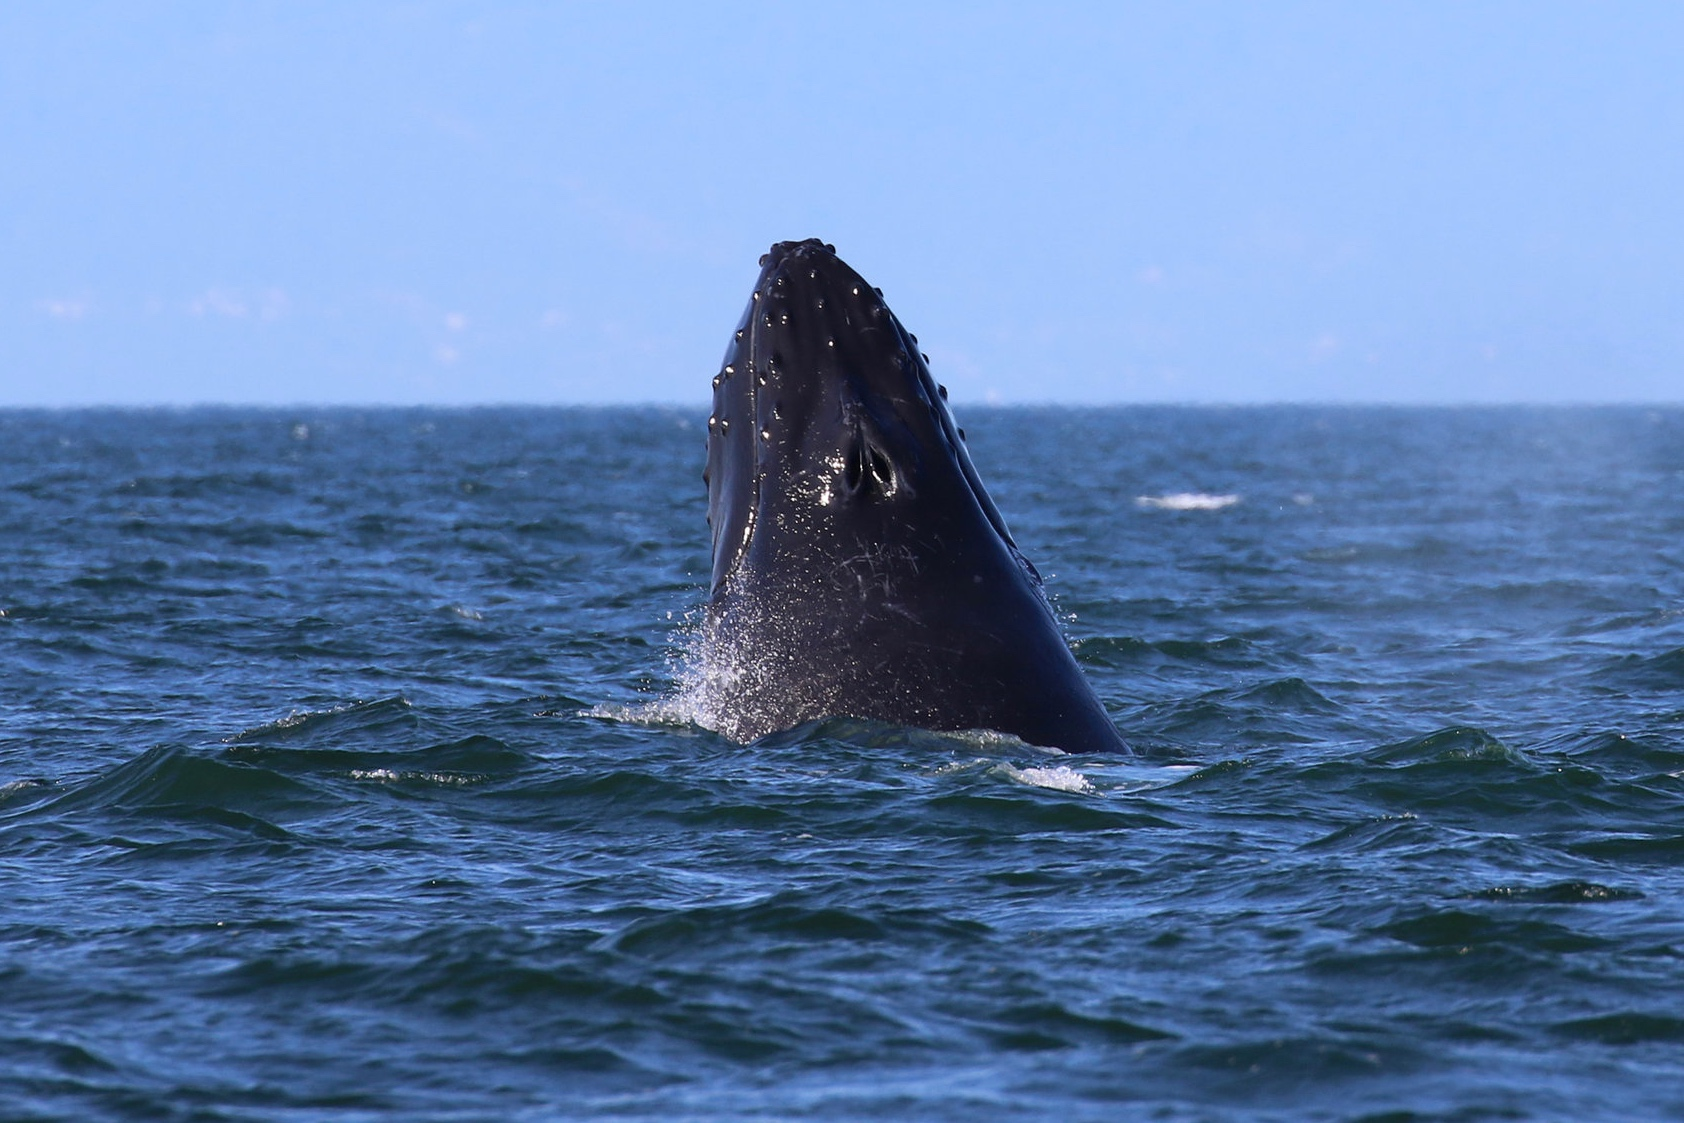 Great shot of some tubercles on this humpback! Photo by Val Watson (3:30).